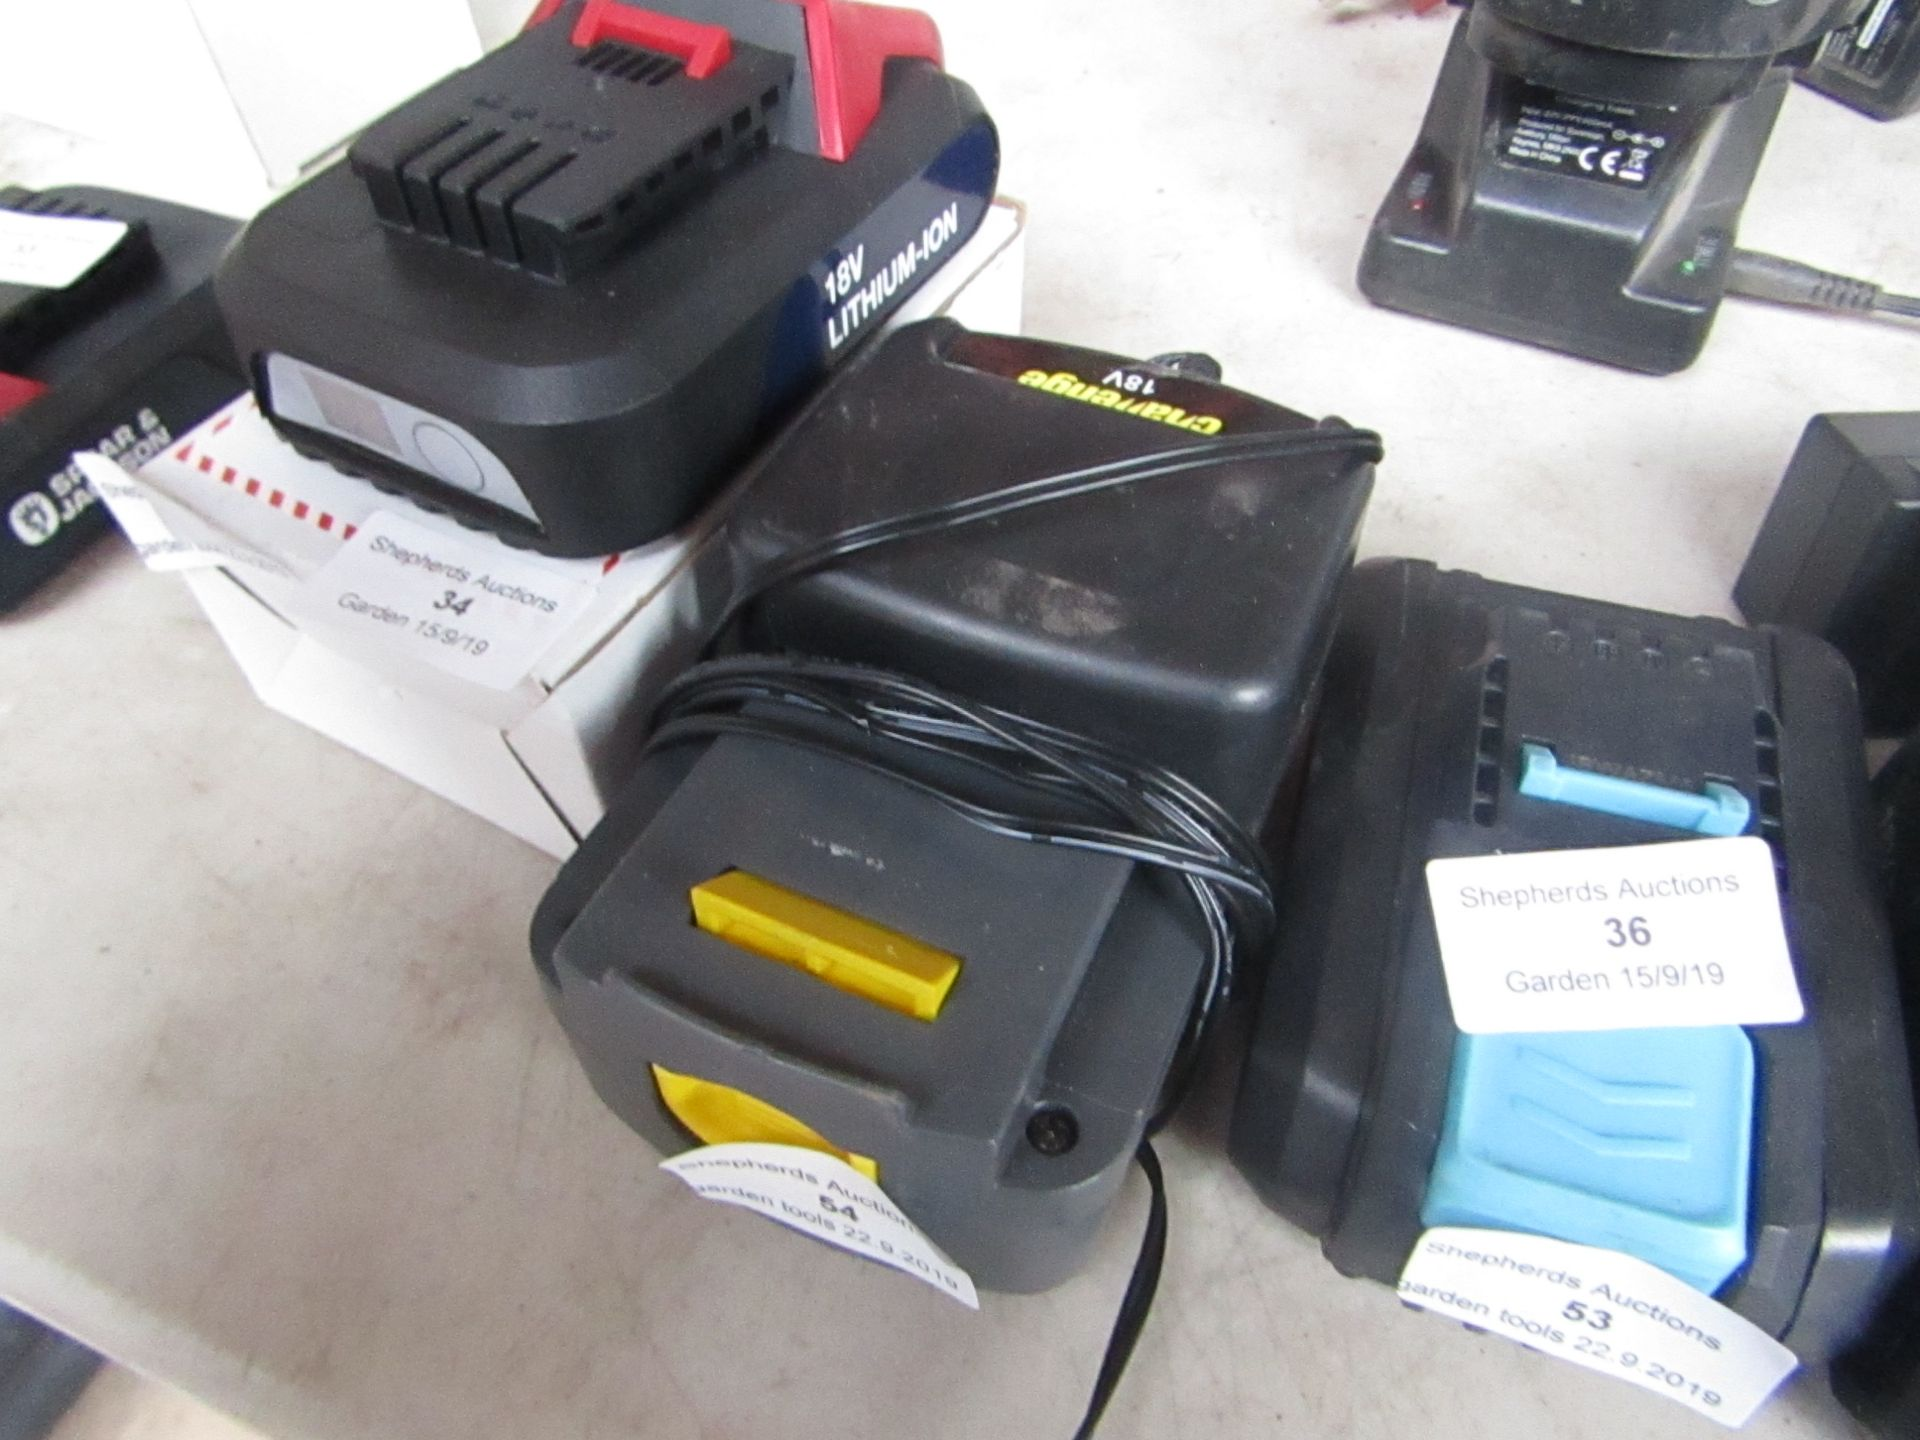 Lotto 54 - Challenge 18V Battery and Charger, unchecked